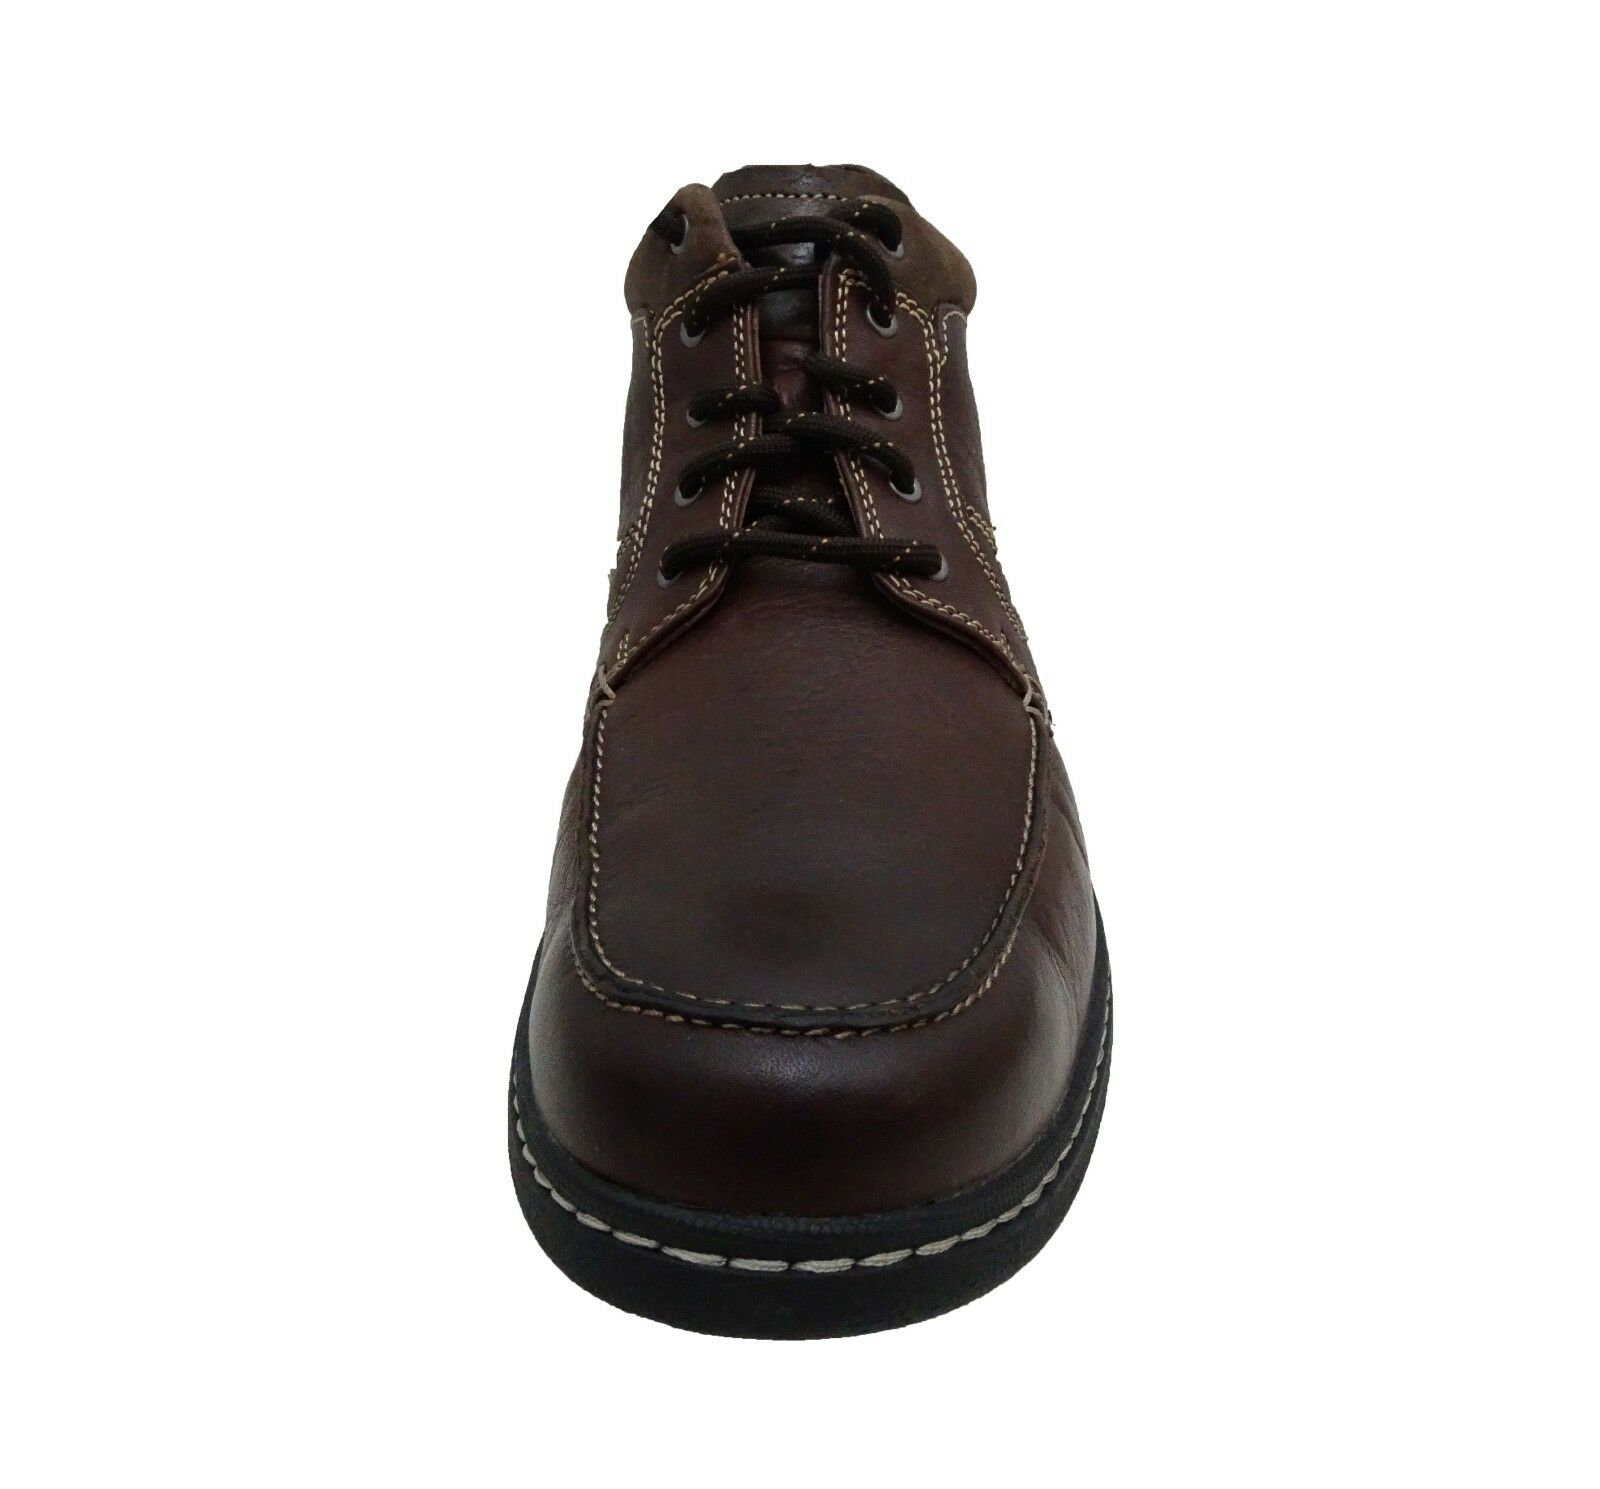 Johnston & Murphy Up  Uomo McCarter Lace Up Murphy Moc Toe Casual Ankle Stiefel Schuhes 78f4d5